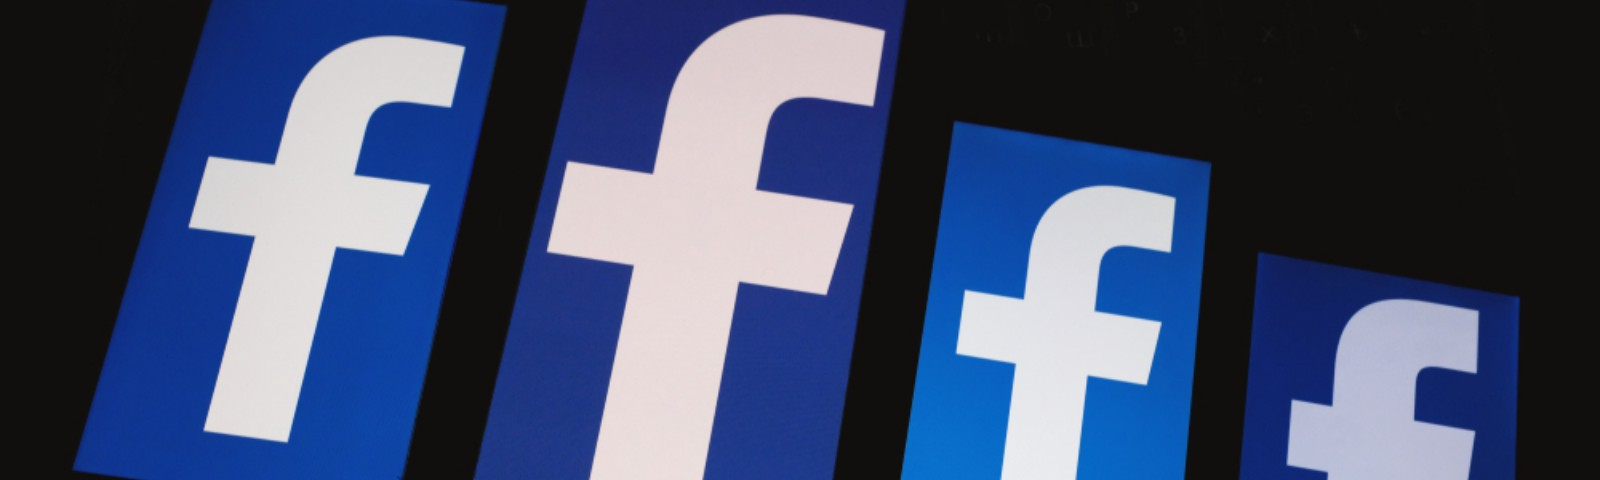 Facebook logos are displayed on the screen of the smartphones.